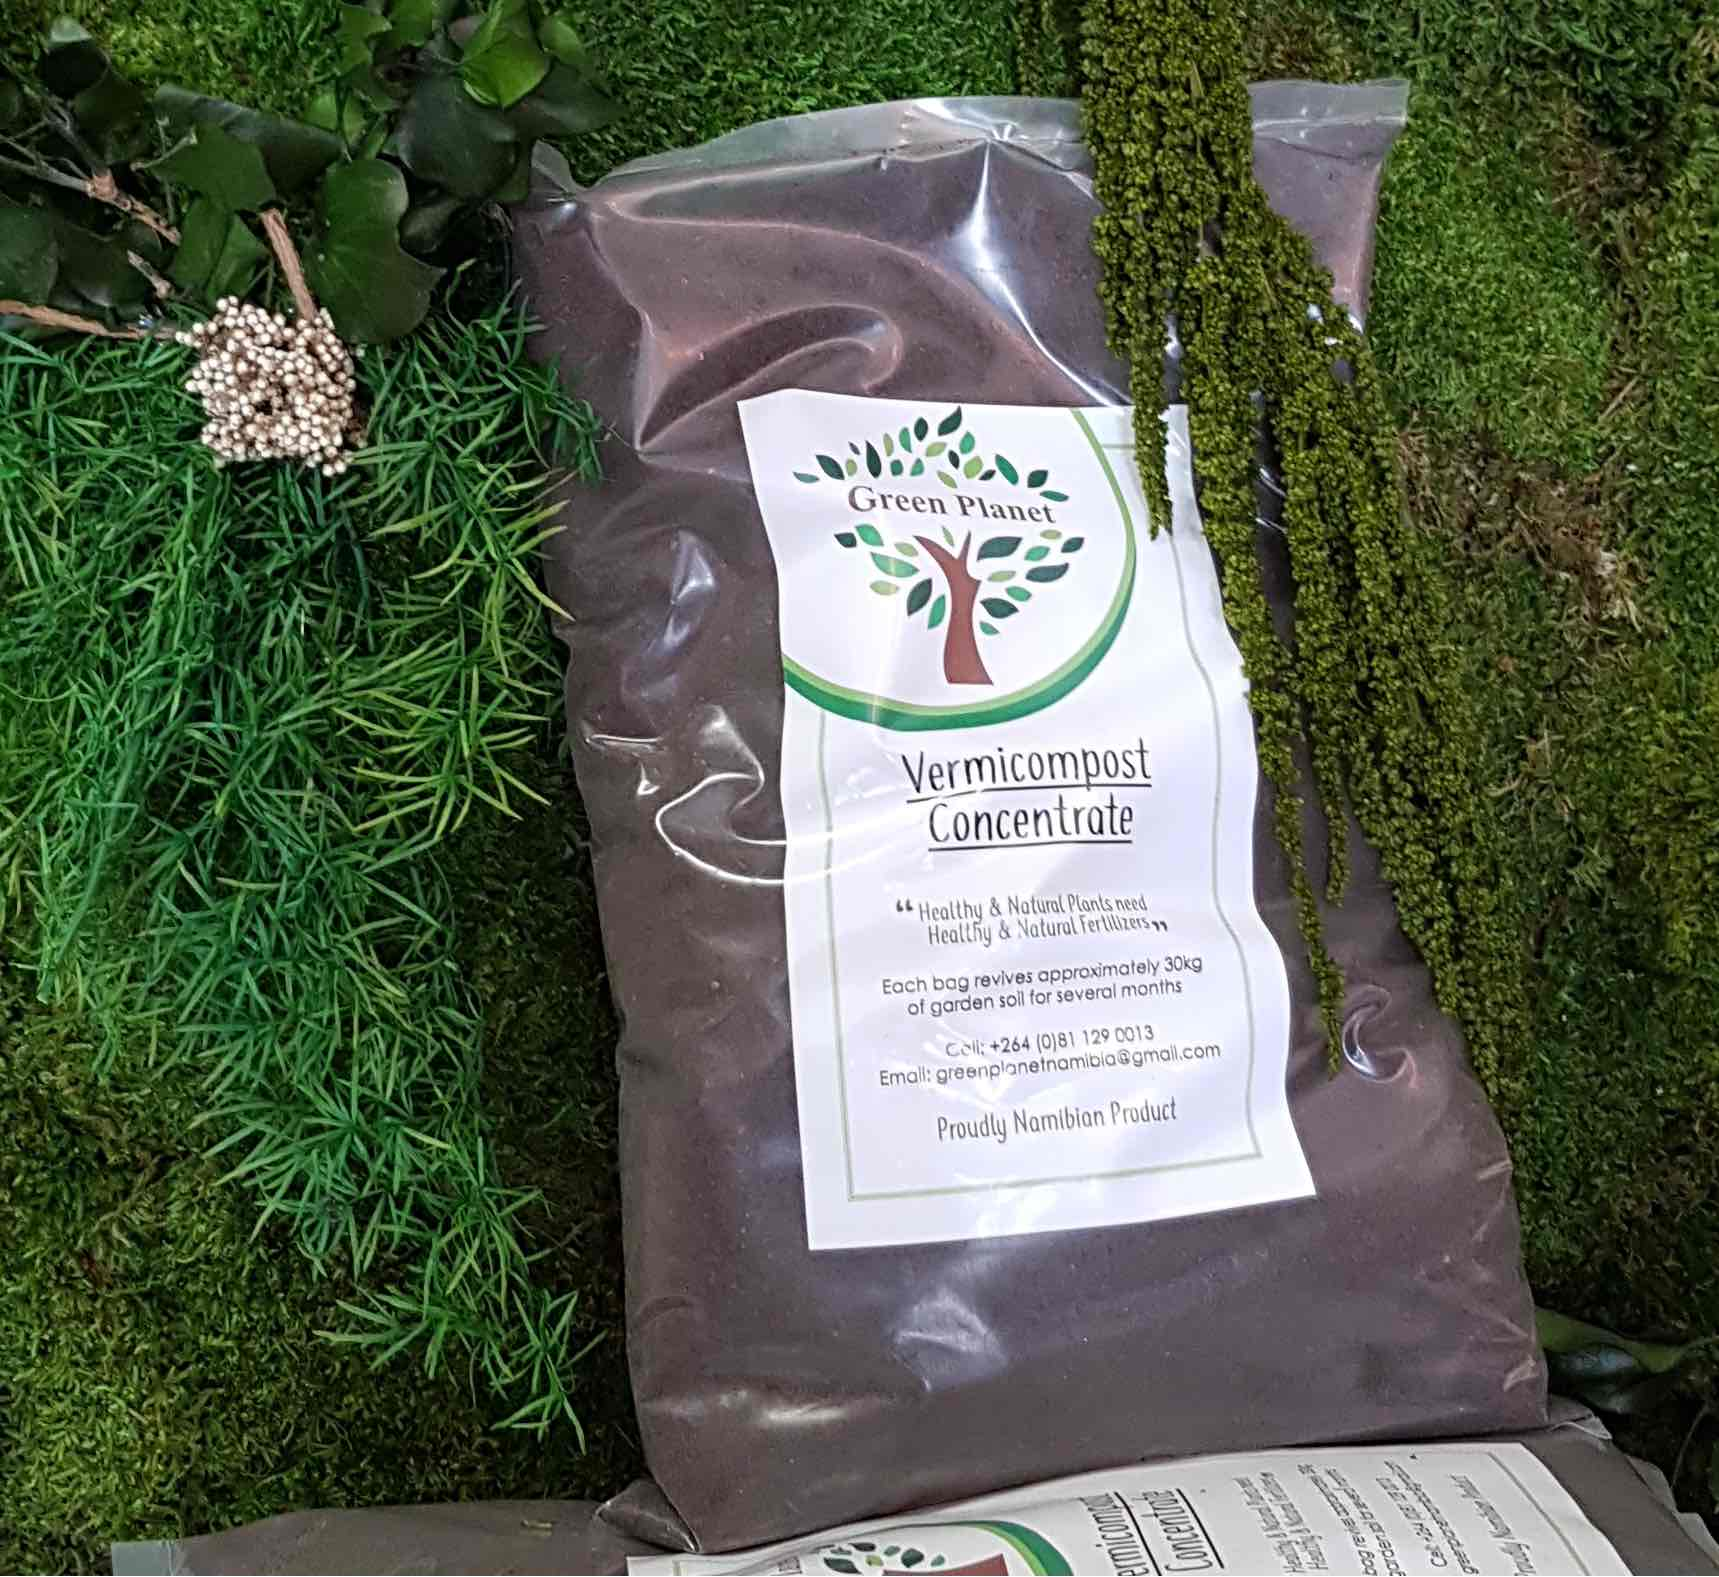 Use our vermicompost concentrate to create beautiful garden at your home